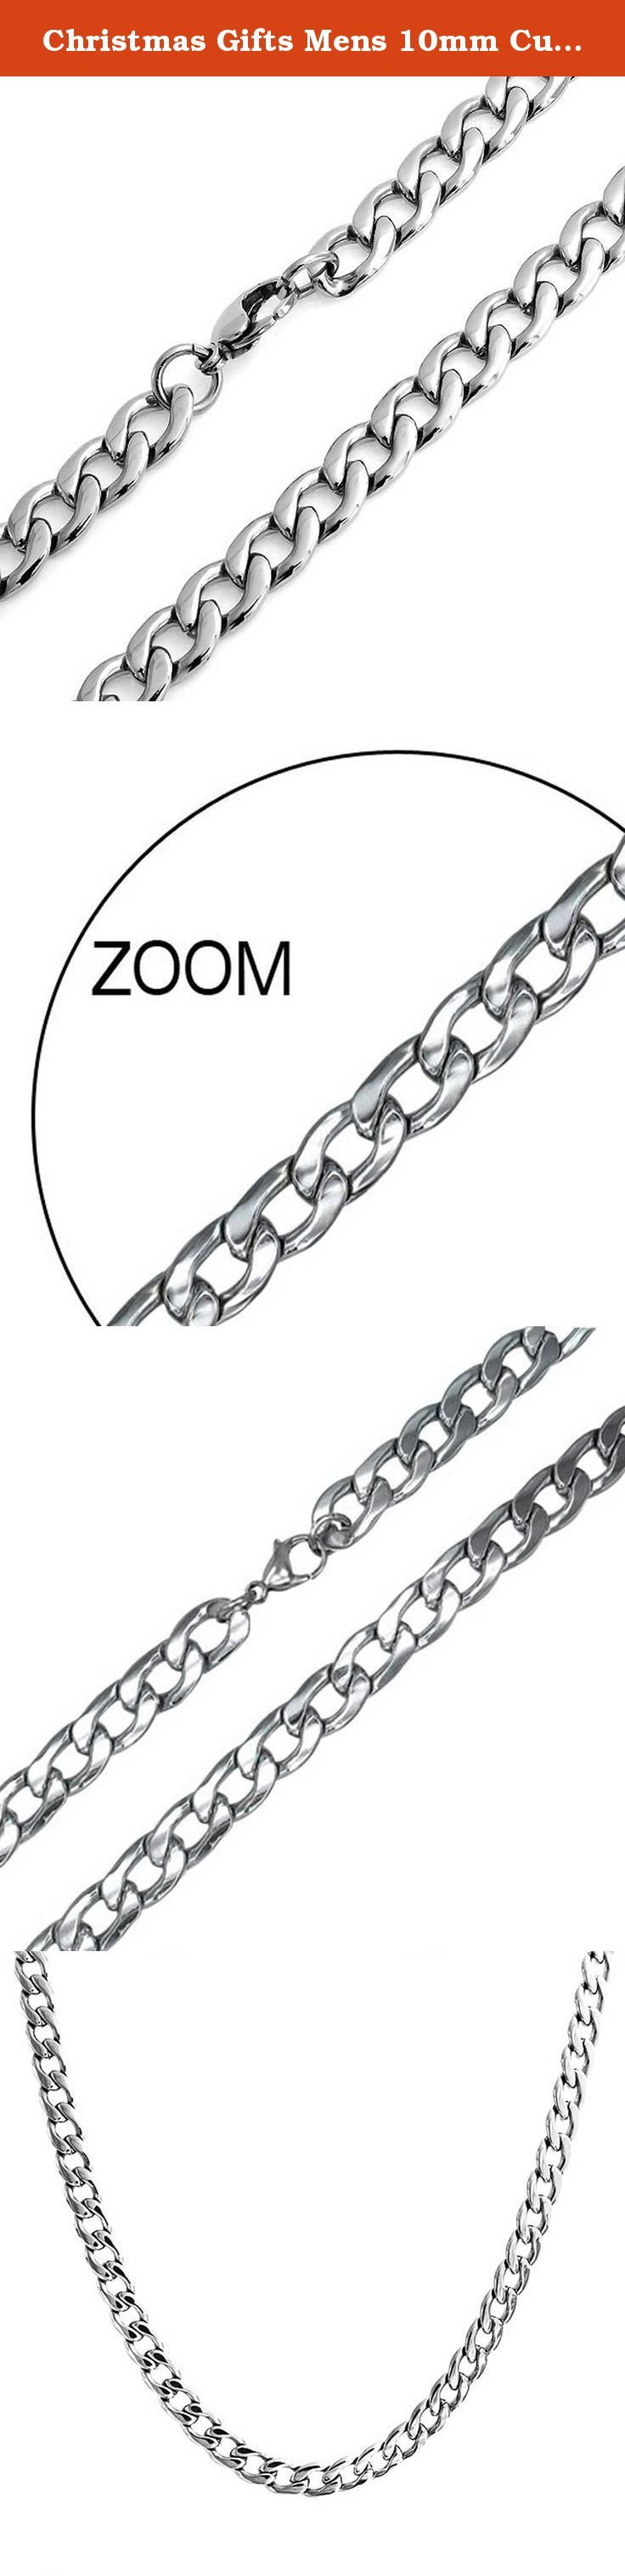 Christmas Gifts Mens 10mm Curb Cuban Stainless Steel Chain Necklace 30in. A bold and masculine look that is perfect for just about any occasion, our sensational and brightly polished mens curb necklace is the perfect gift for him for Fathers Day jewelry or for his birthday. Our mens stainless steel necklace is simple in its stylish design and substantial in its weight. The piece will hang perfectly around his neck for a look that can take him from a day at the beach to a night out on the...